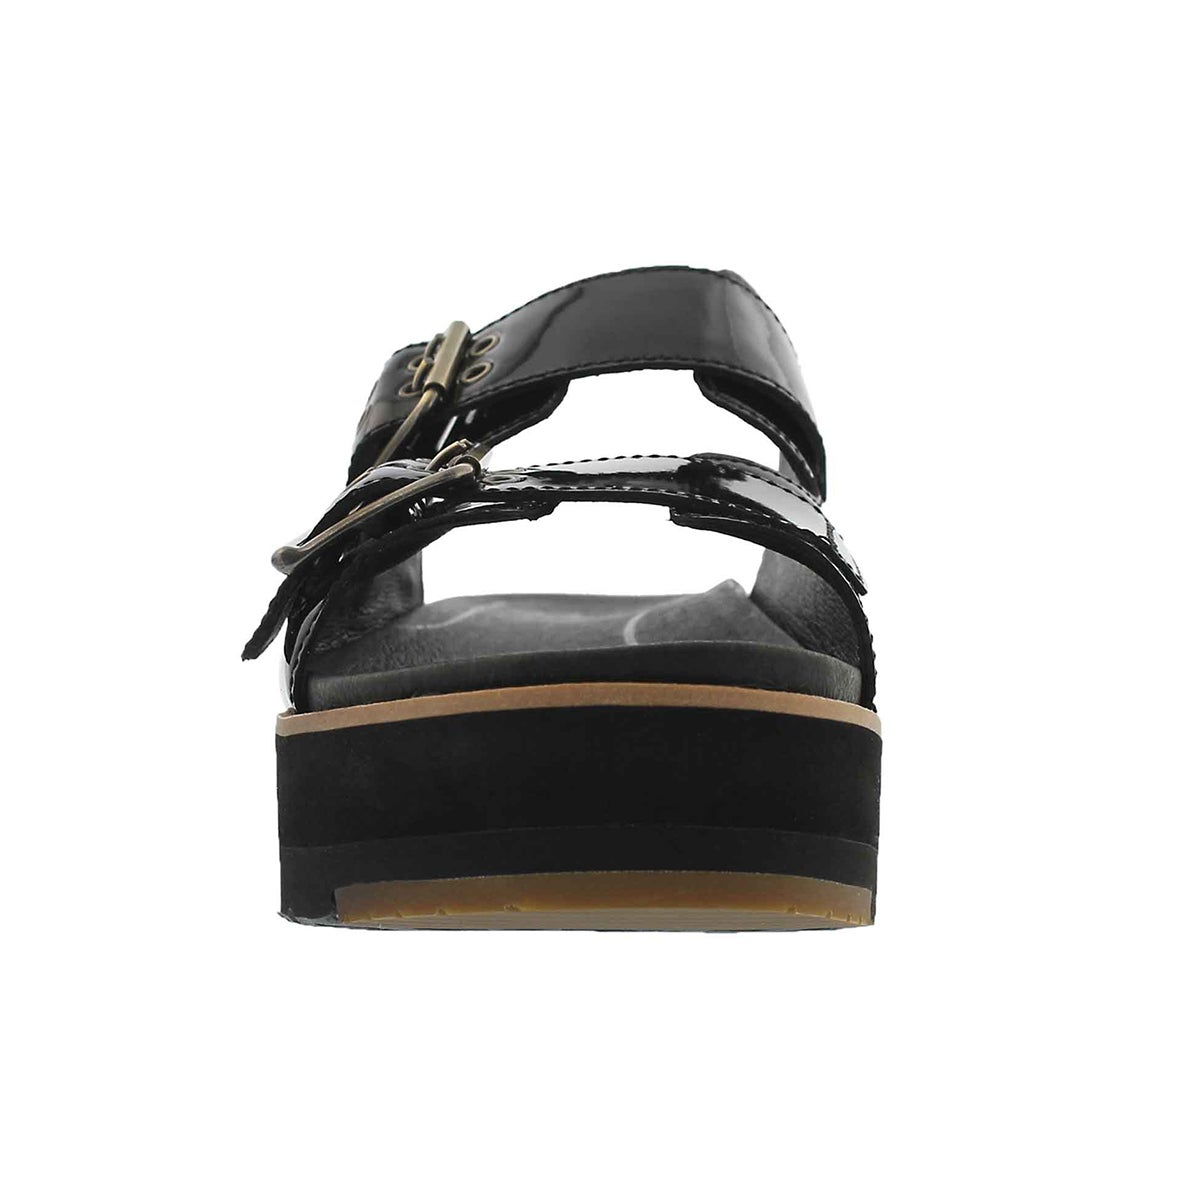 Lds Cammie blk casual slide sandal